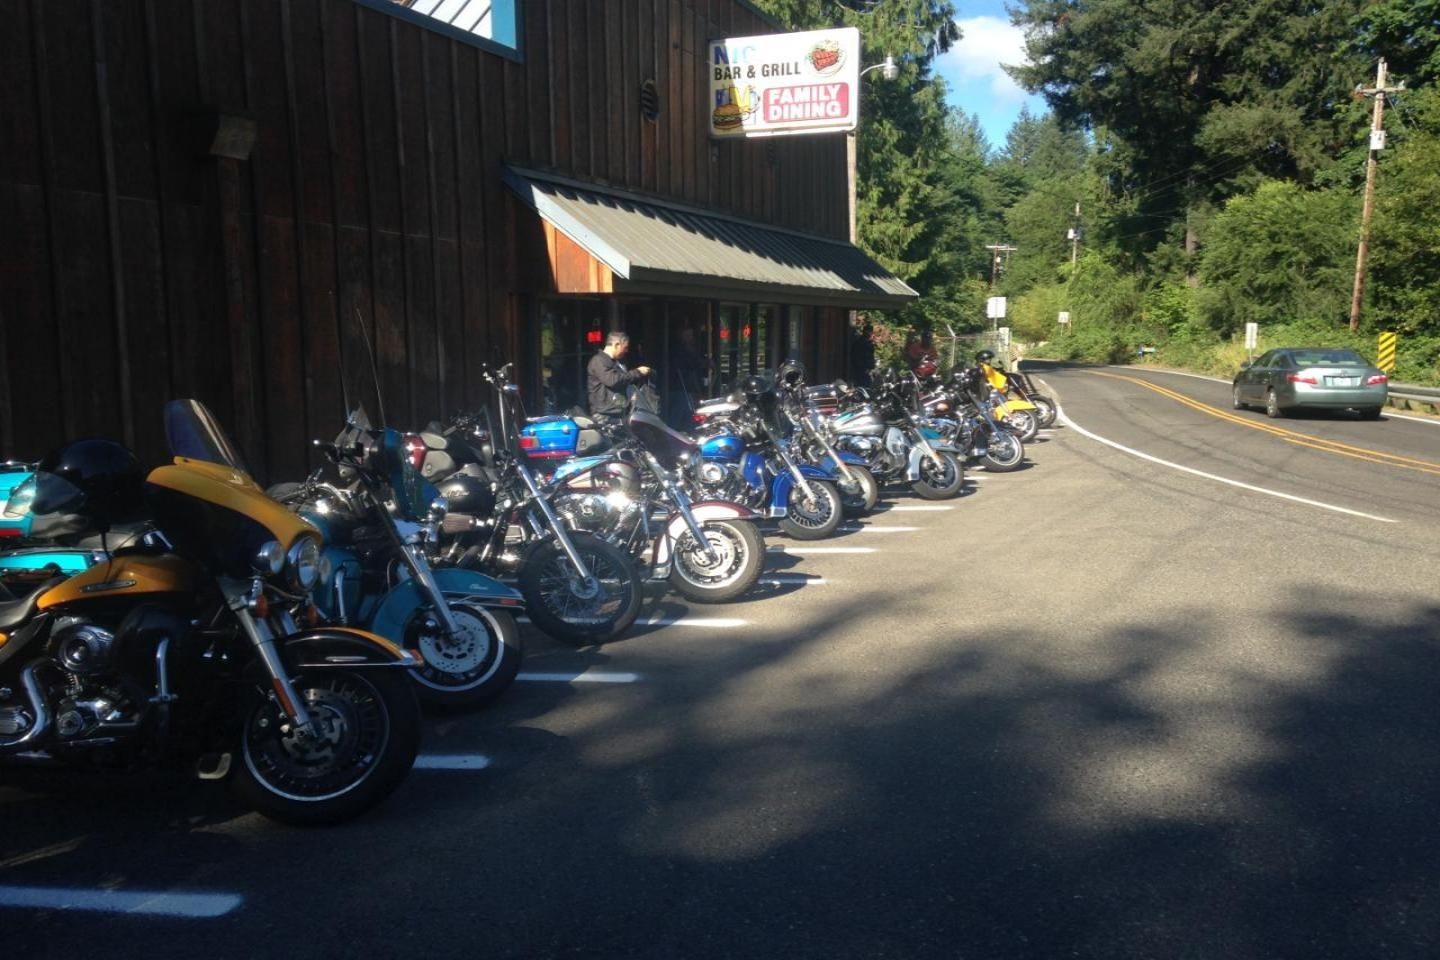 Nicks Tavern poker run